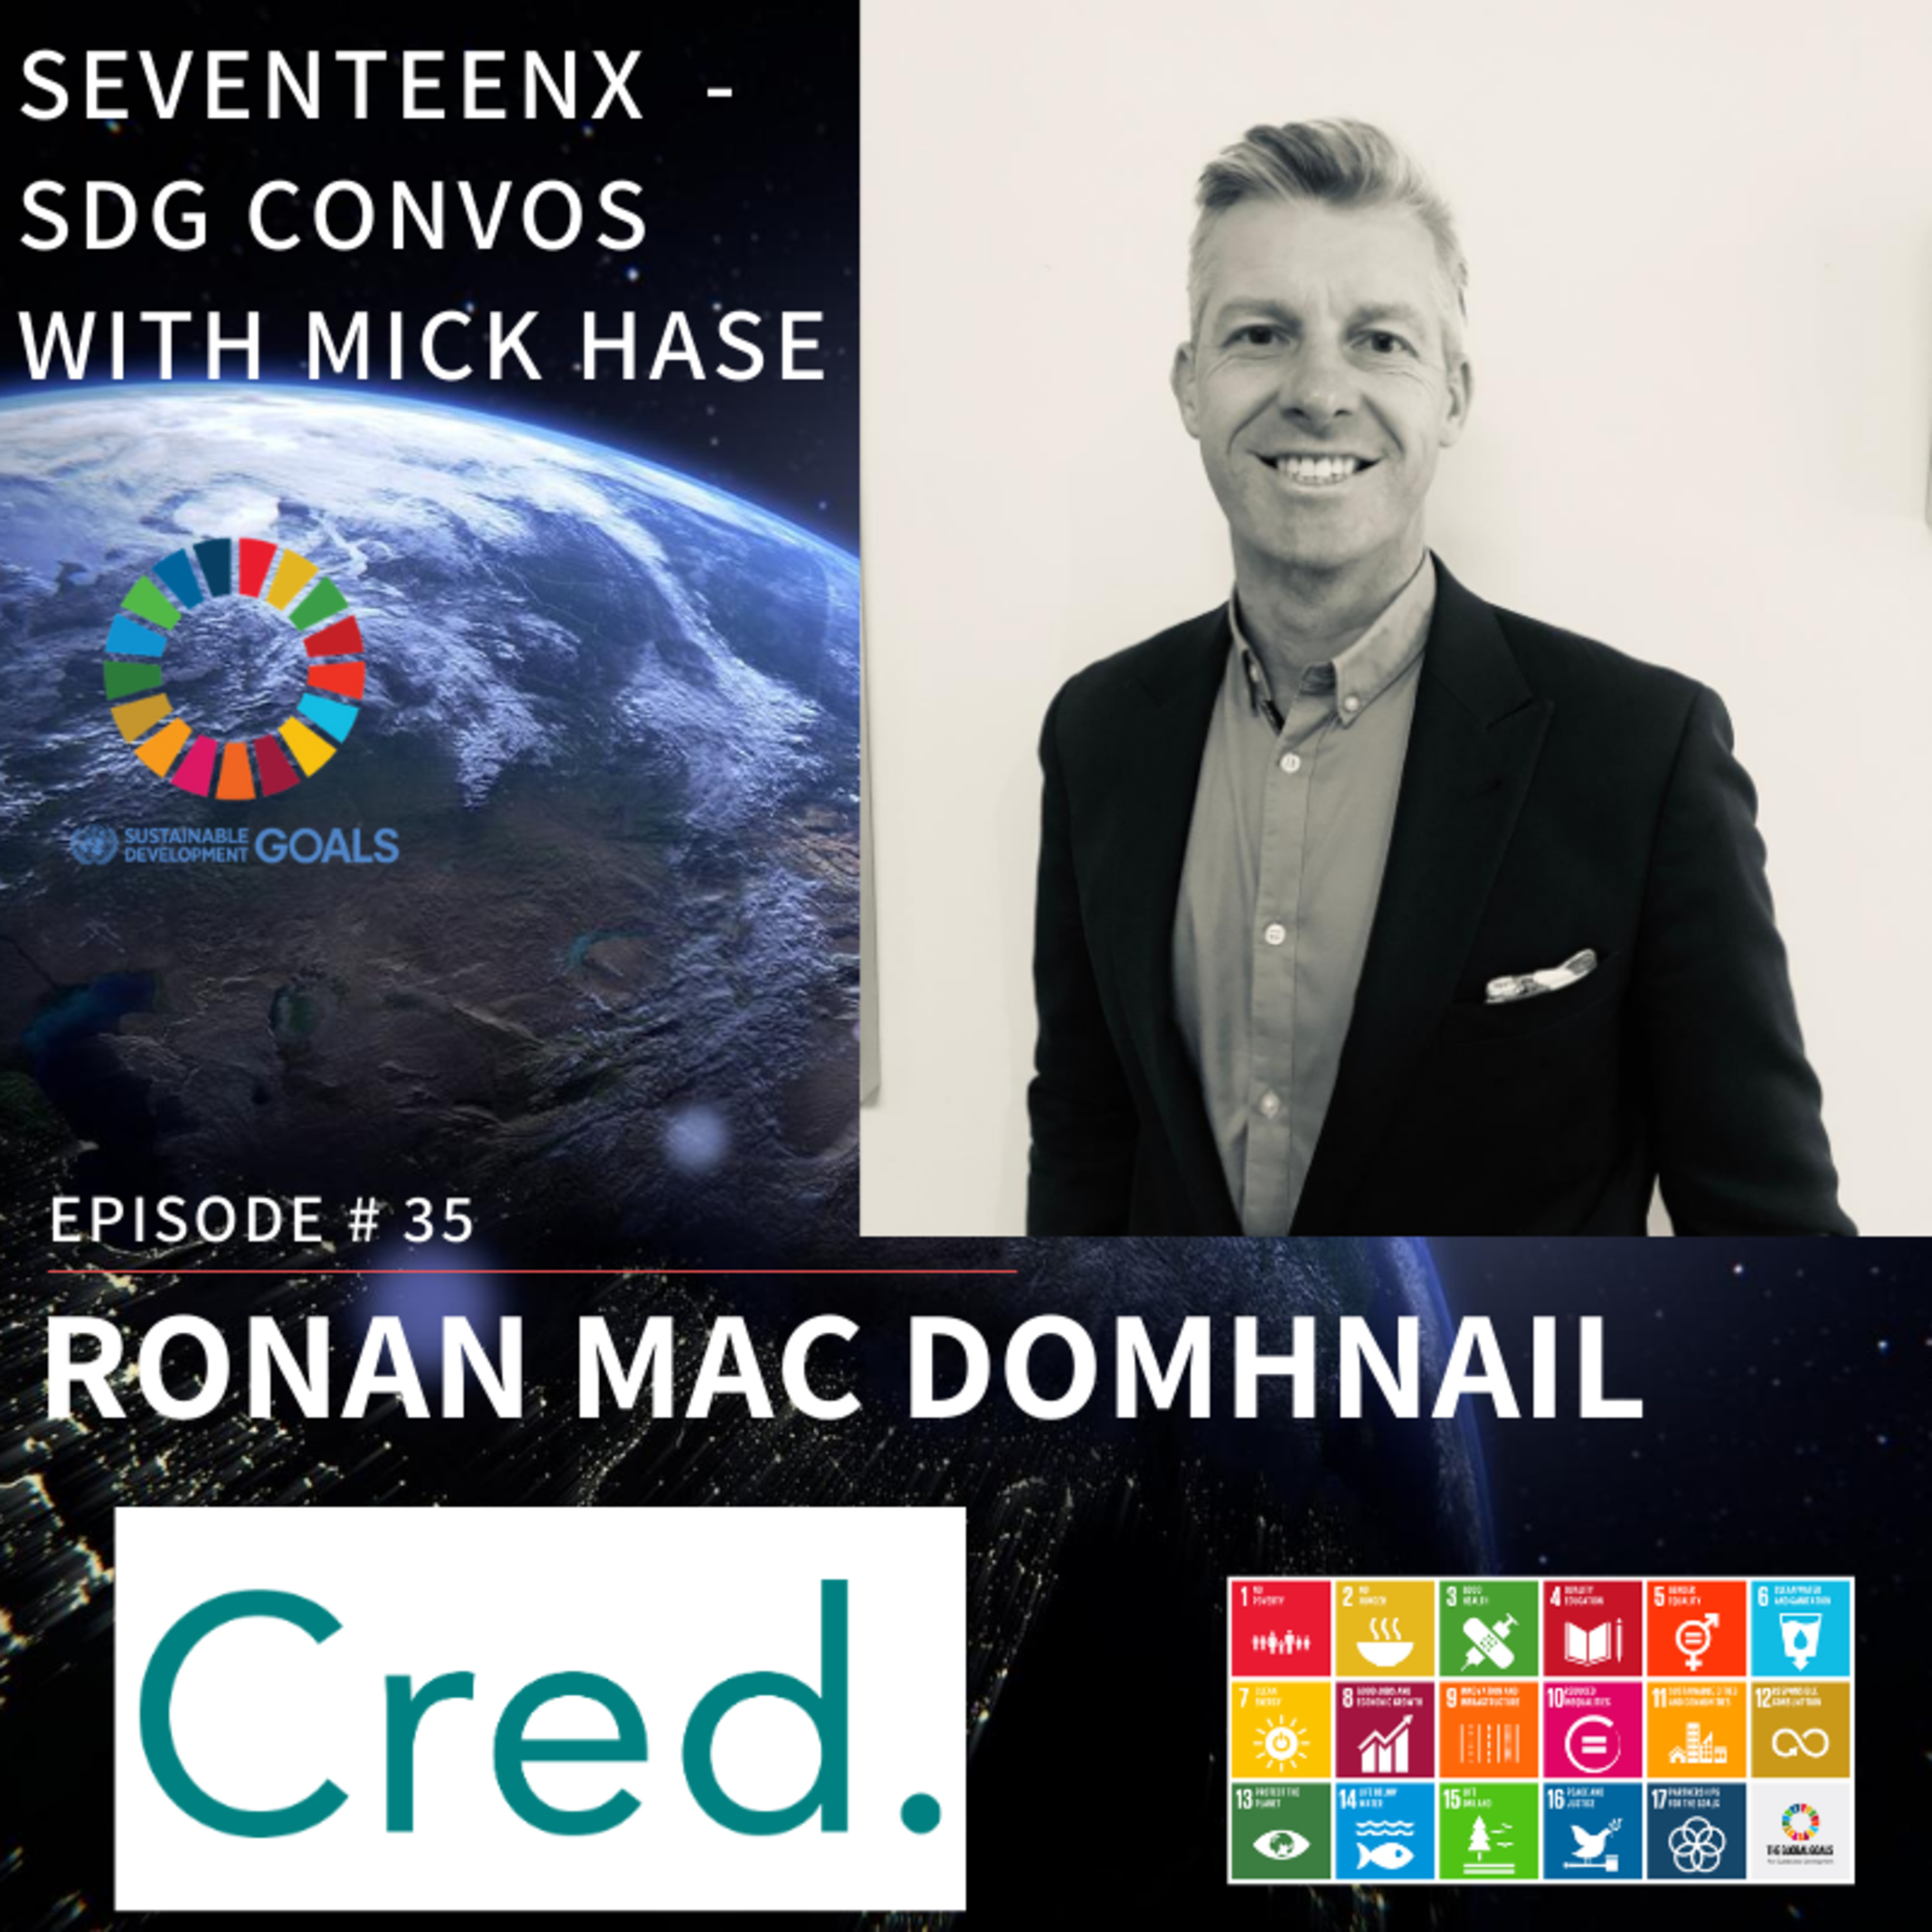 Ronan Mac Domhnaill on how using life experience, personal ambition and a global community to bring about change.